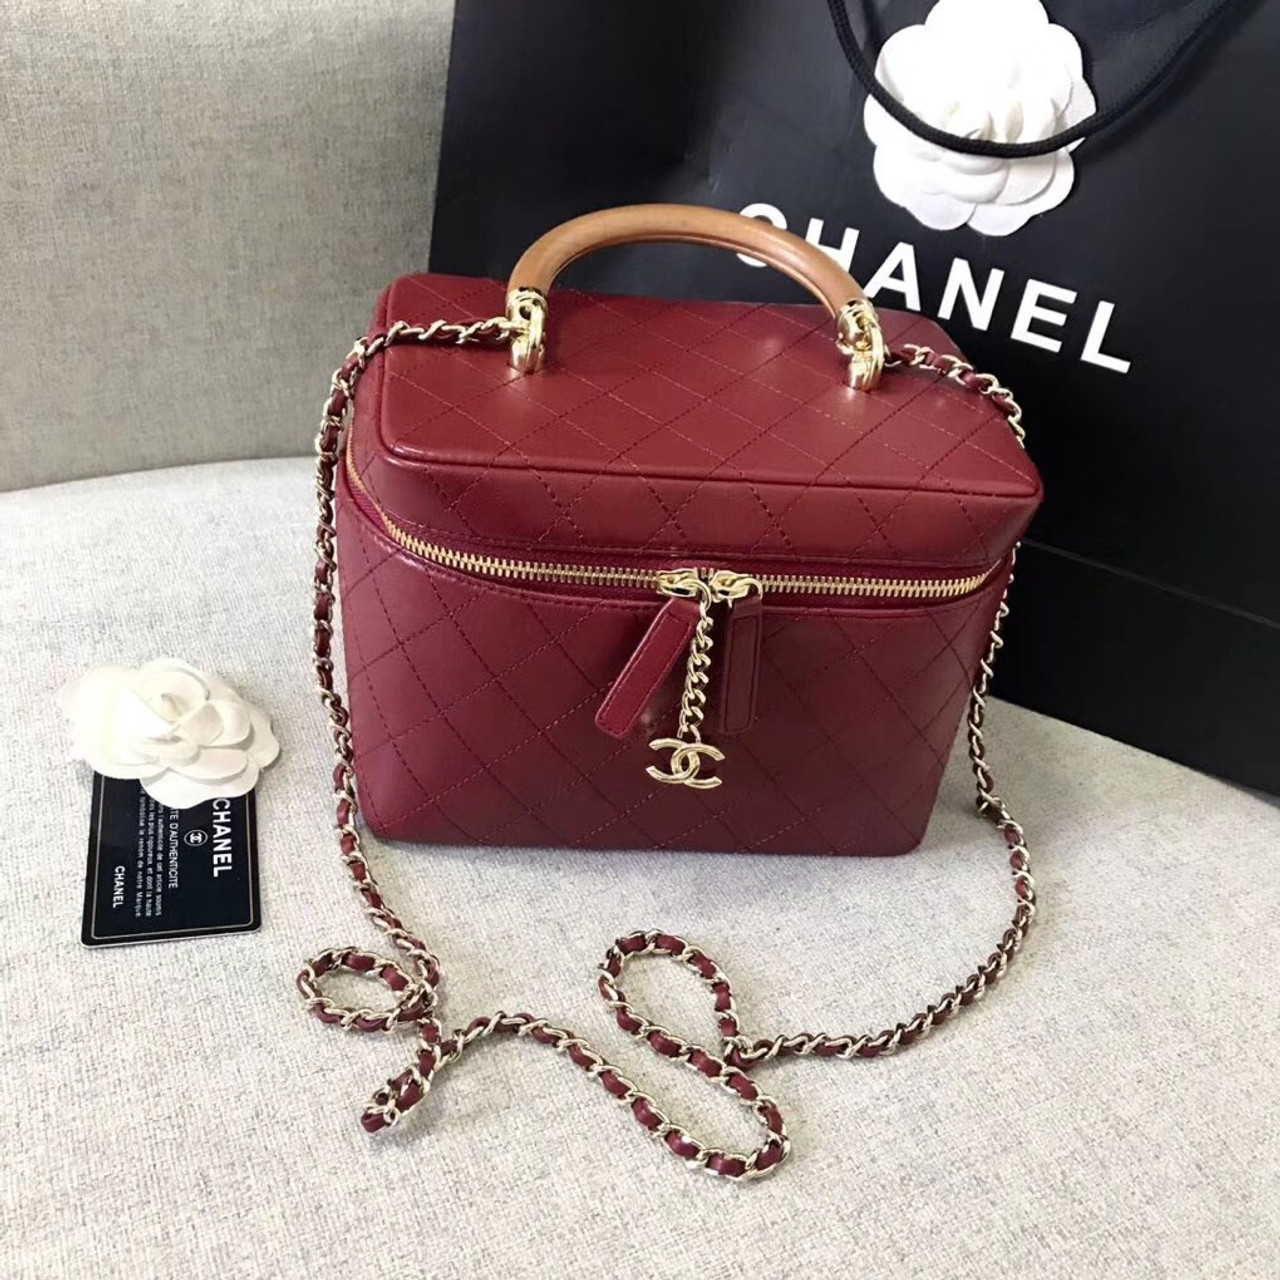 b707f2589222 Chanel Vintage Vanity Case Red 2018/2019 - Bella Vita Moda